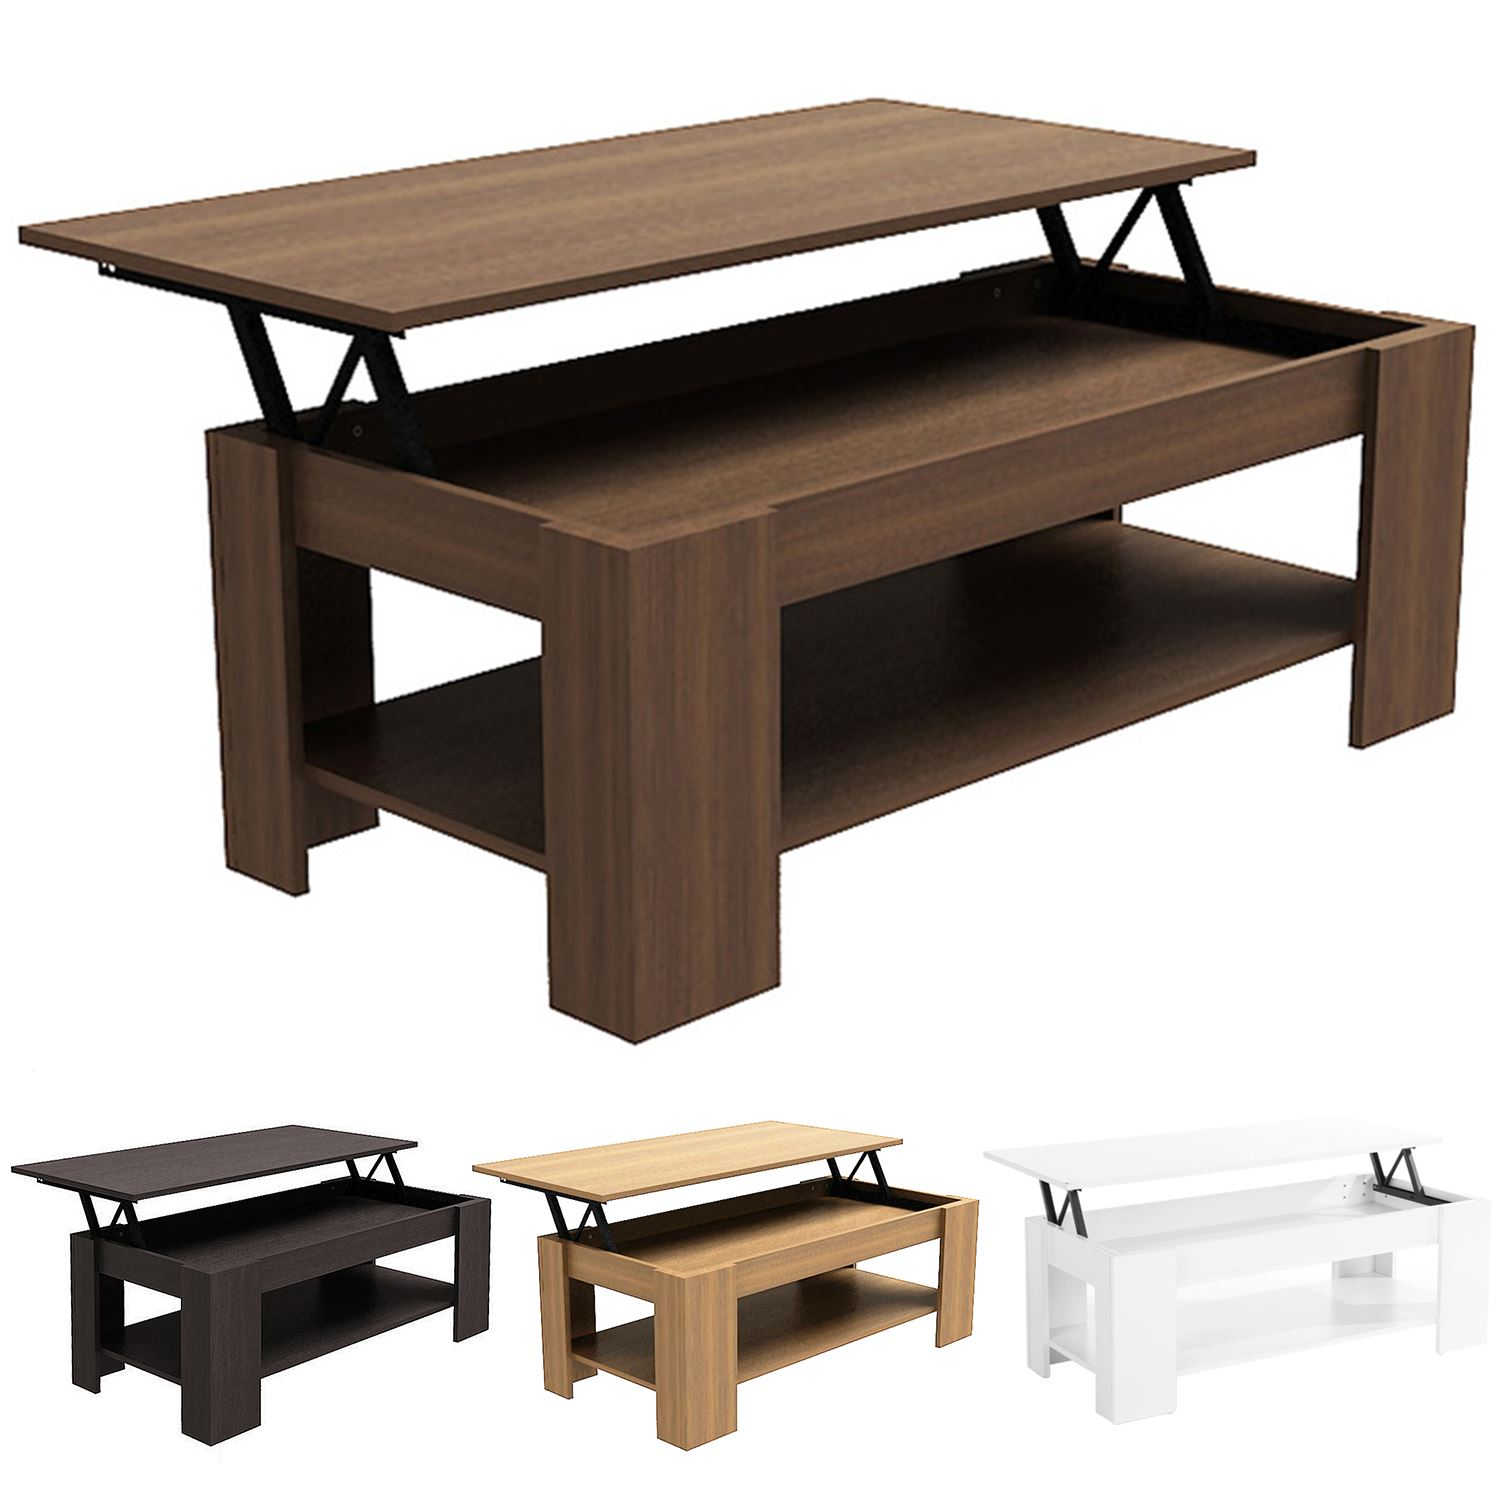 MODERN LIFT-UP EASY STORAGE COFFEE WOODEN ESPRESSO TABLE